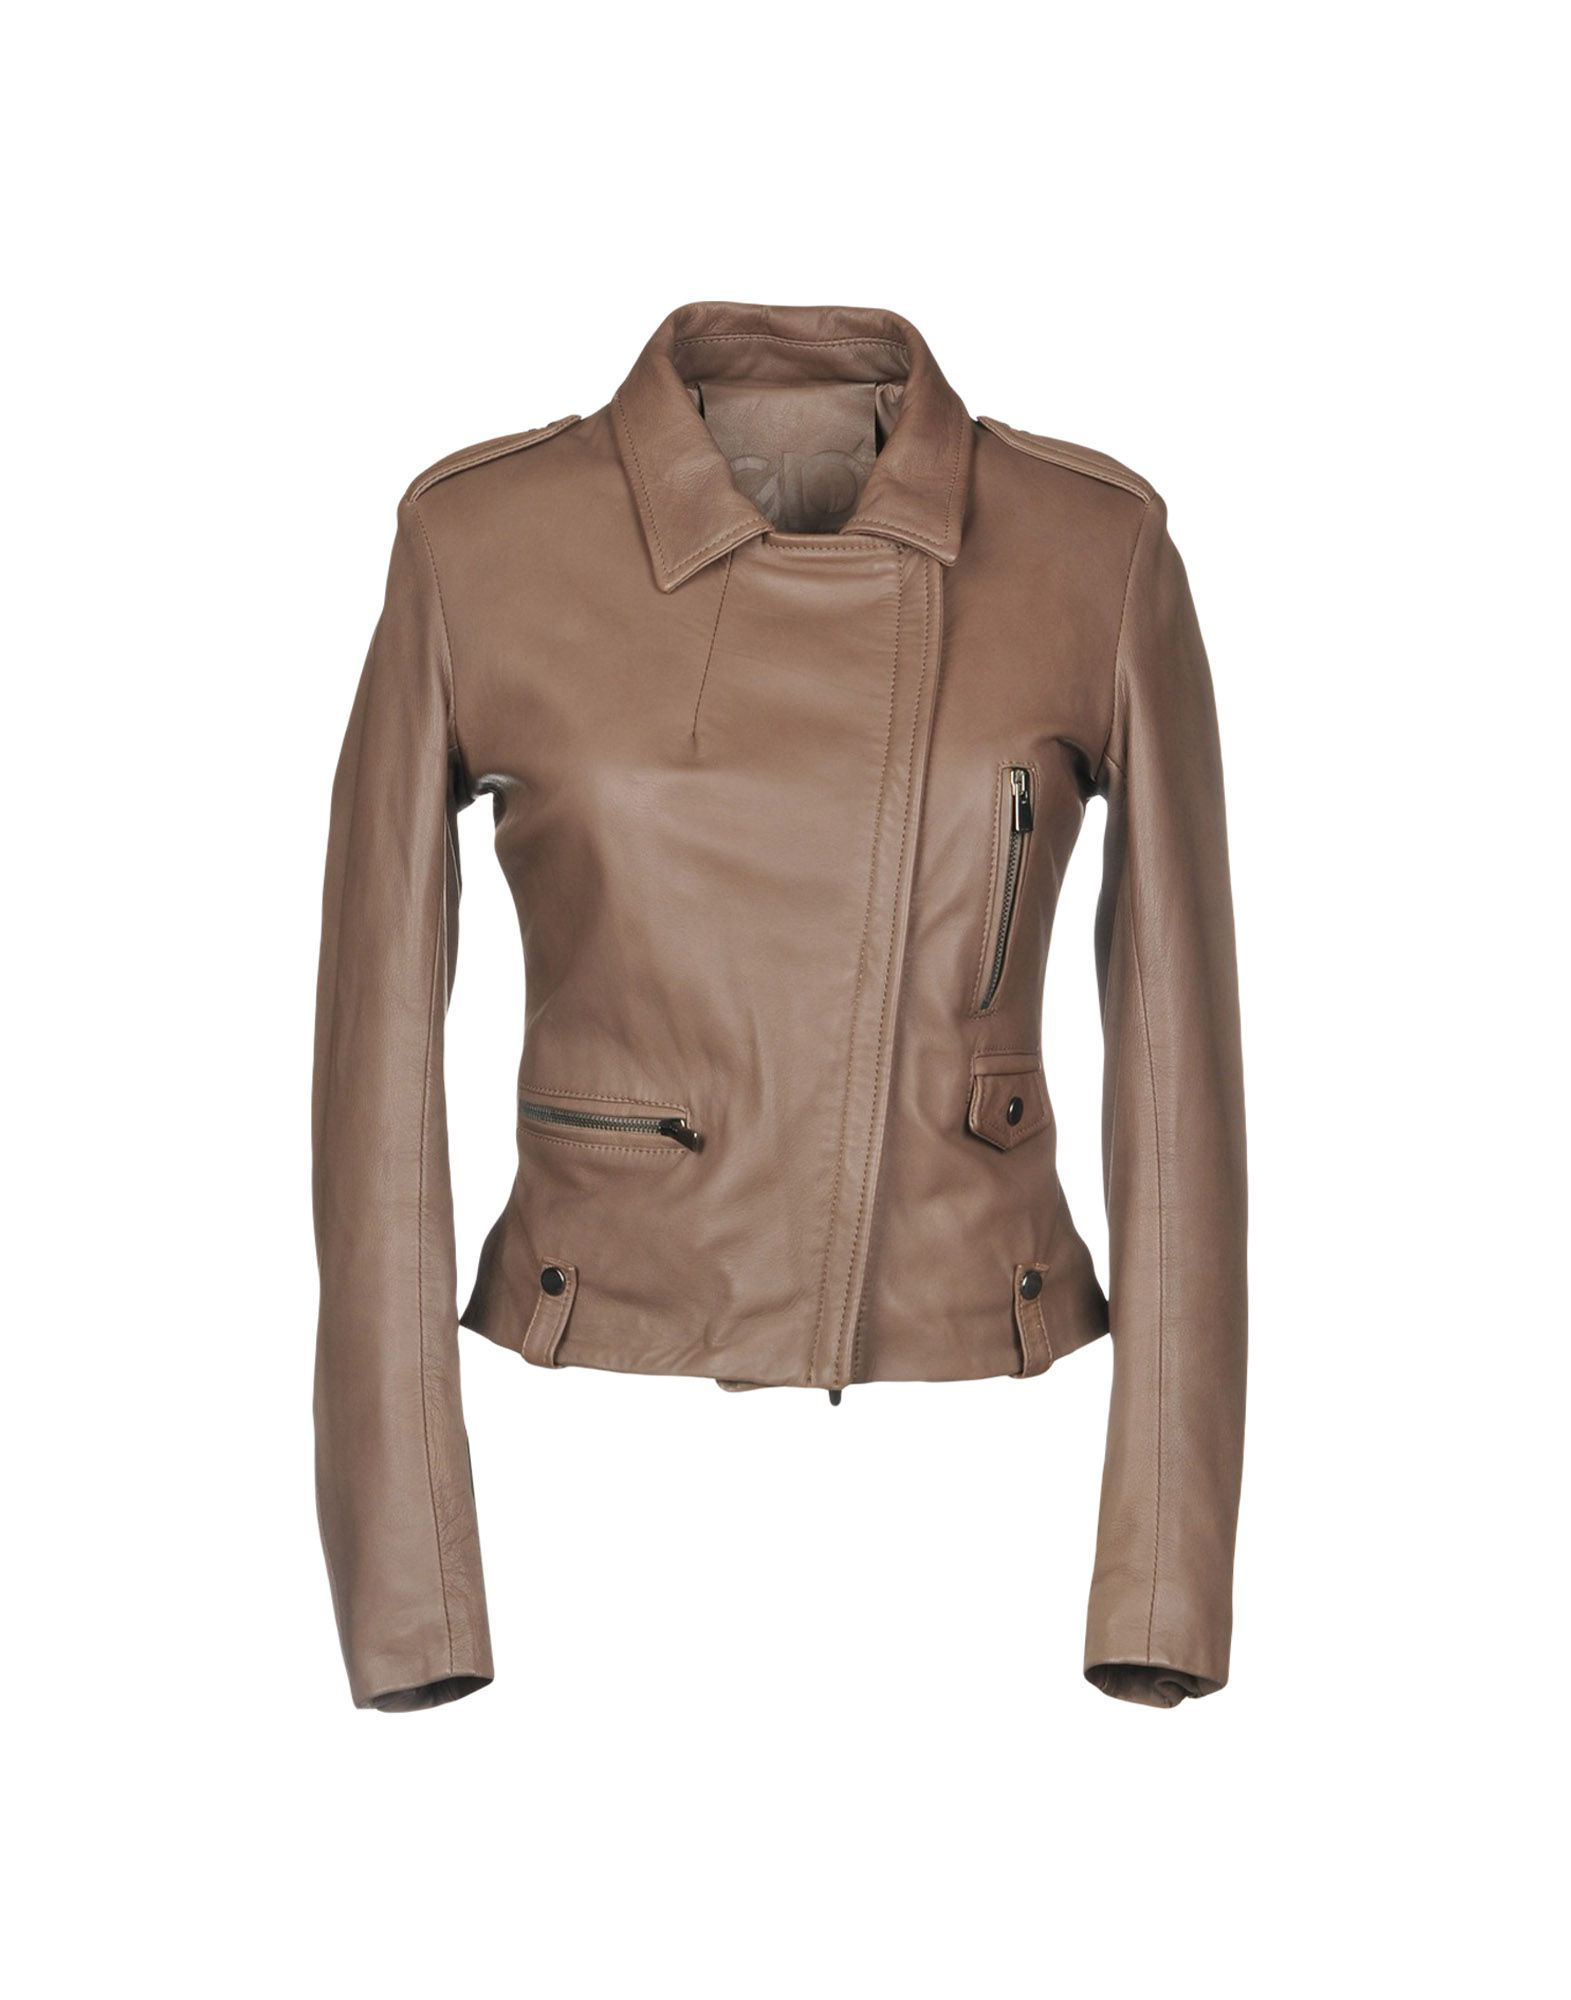 GIO' GUERRERI Biker Jacket in Dove Grey